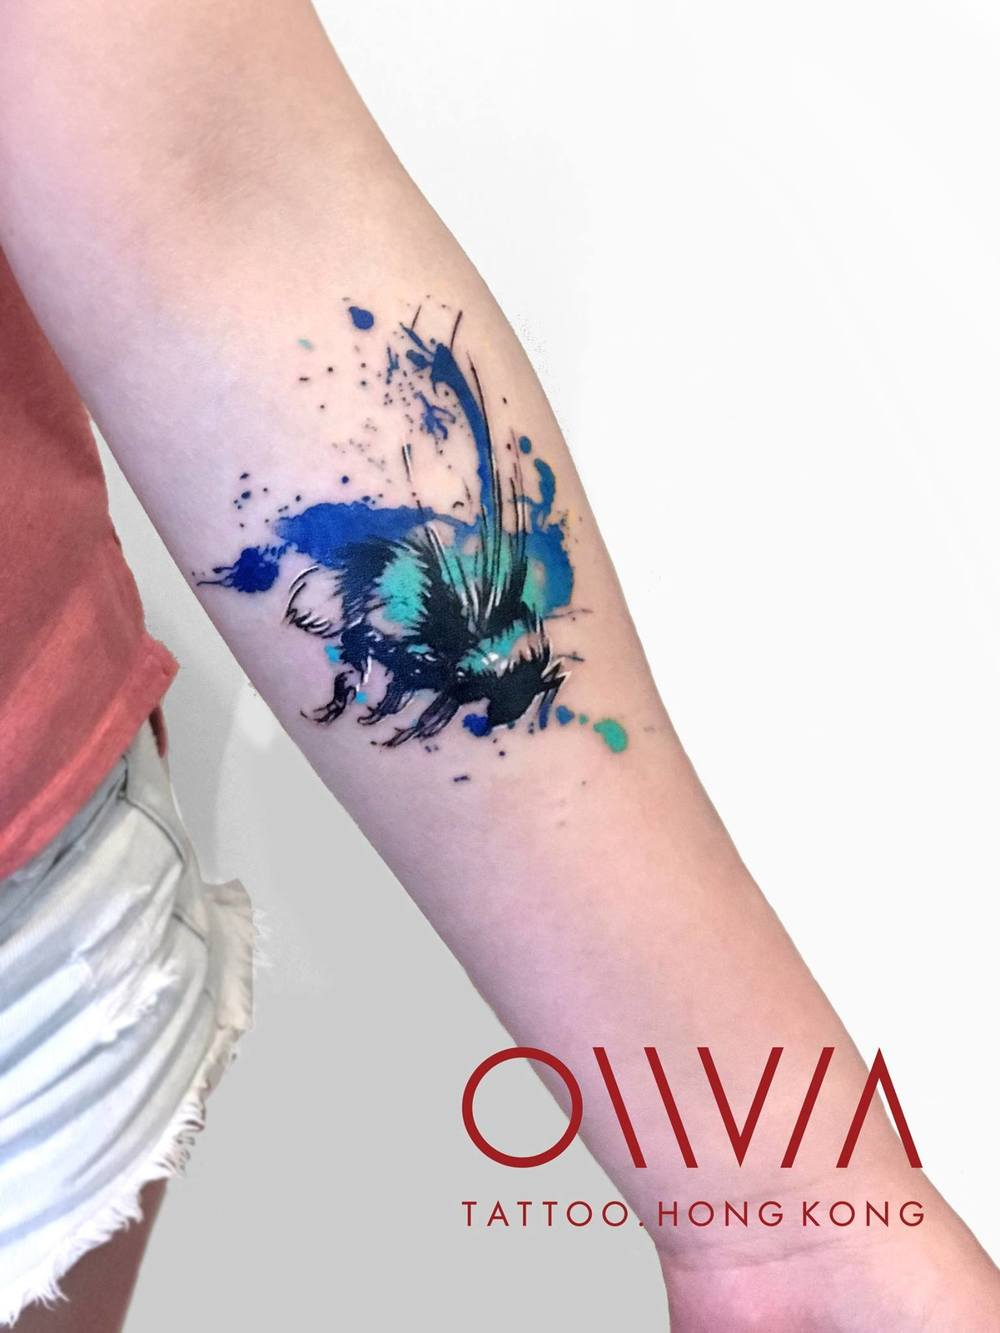 2016-fridays-tattoo-hong-kong-olivia-watercolor-abstract-brush-bee.jpg